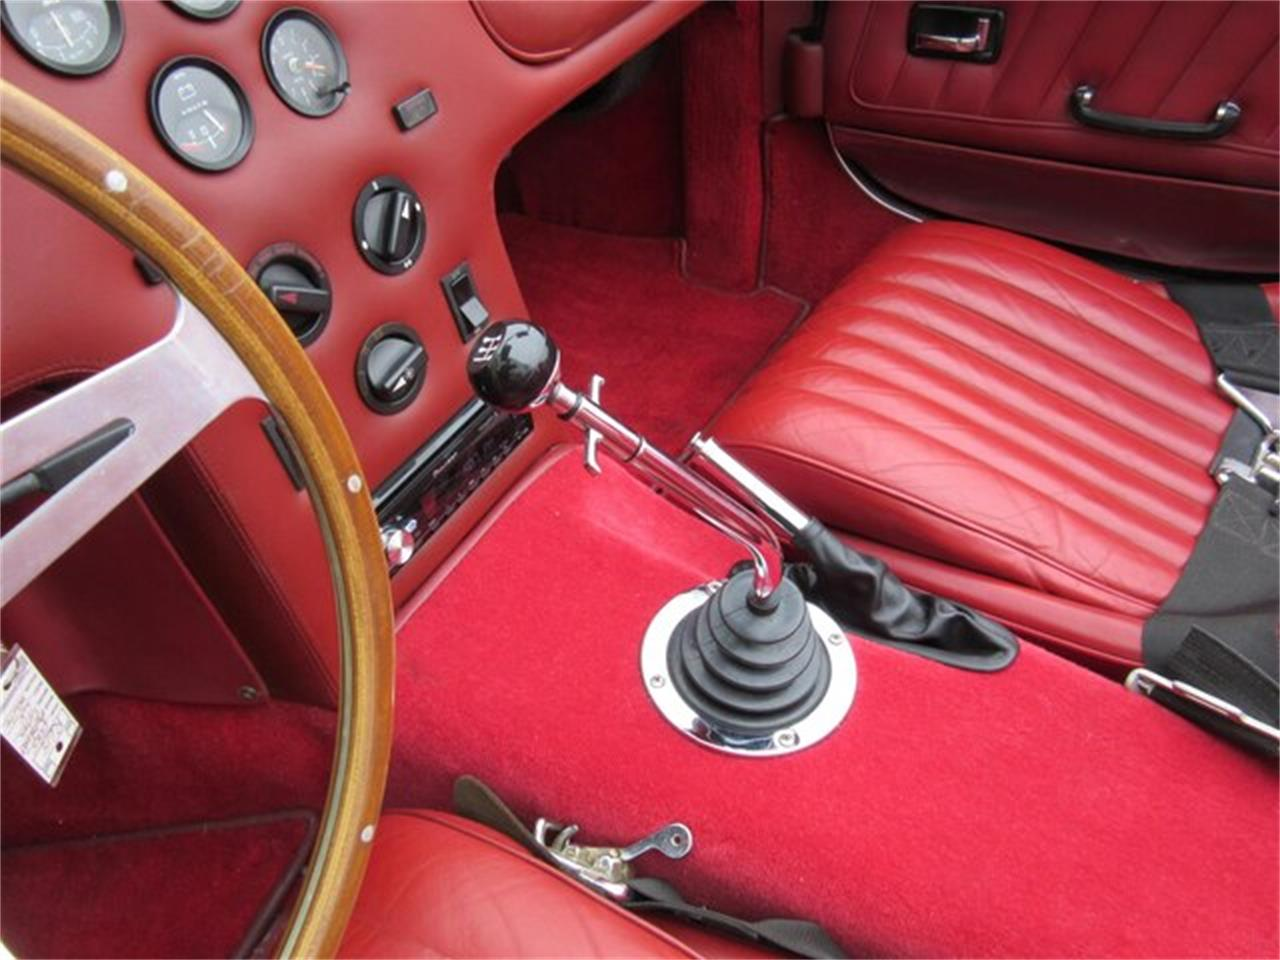 1985 Autokraft Cobra for sale in Greenwood, IN – photo 50